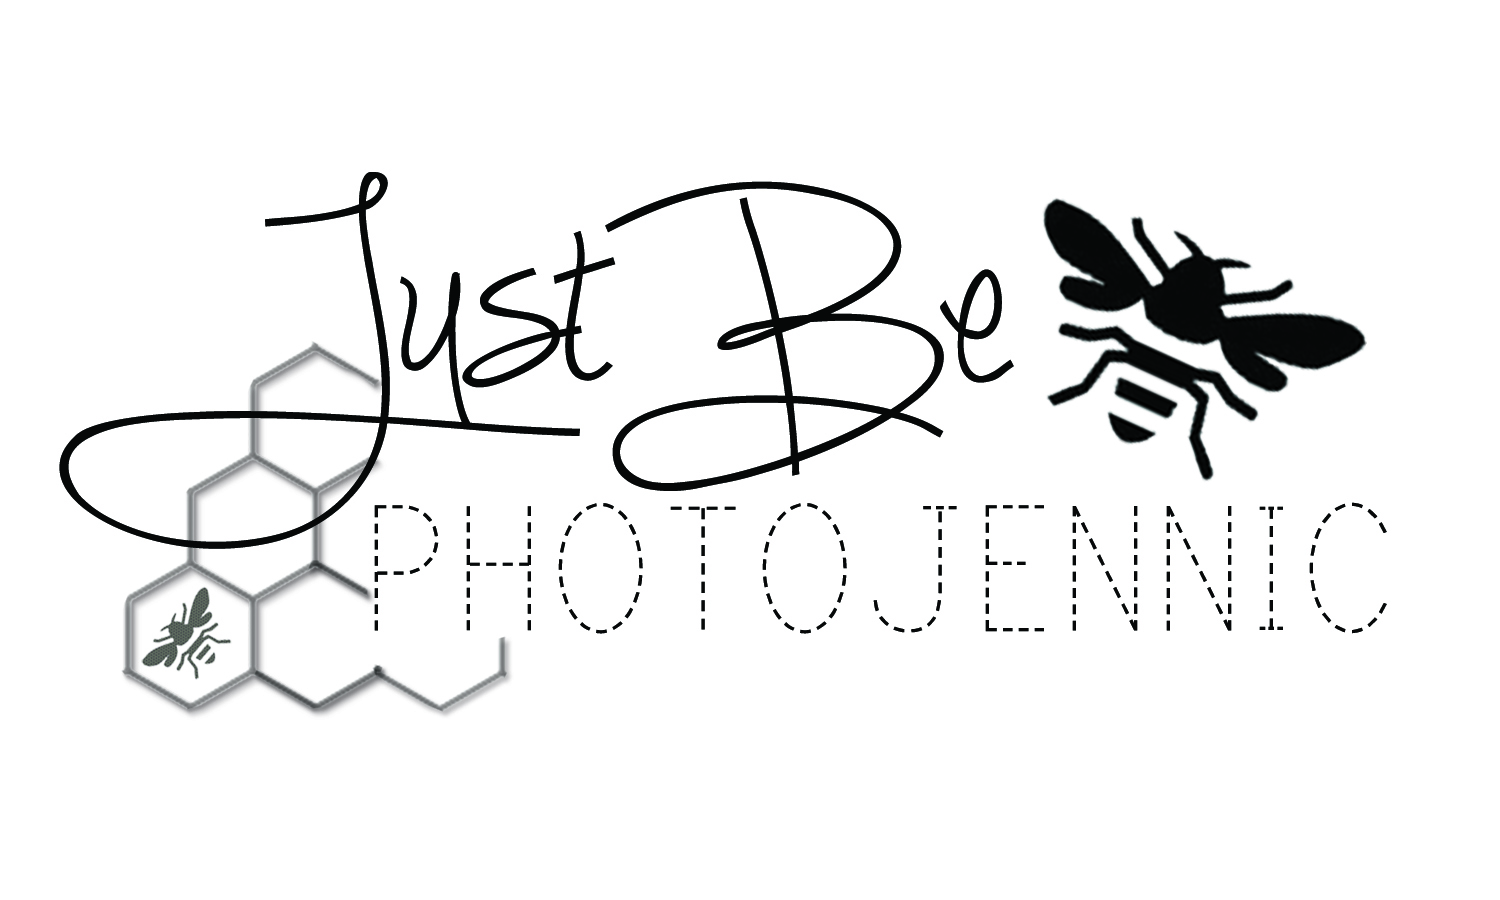 JUST BE PHOTOJENNIC PHOTOGRAPHY